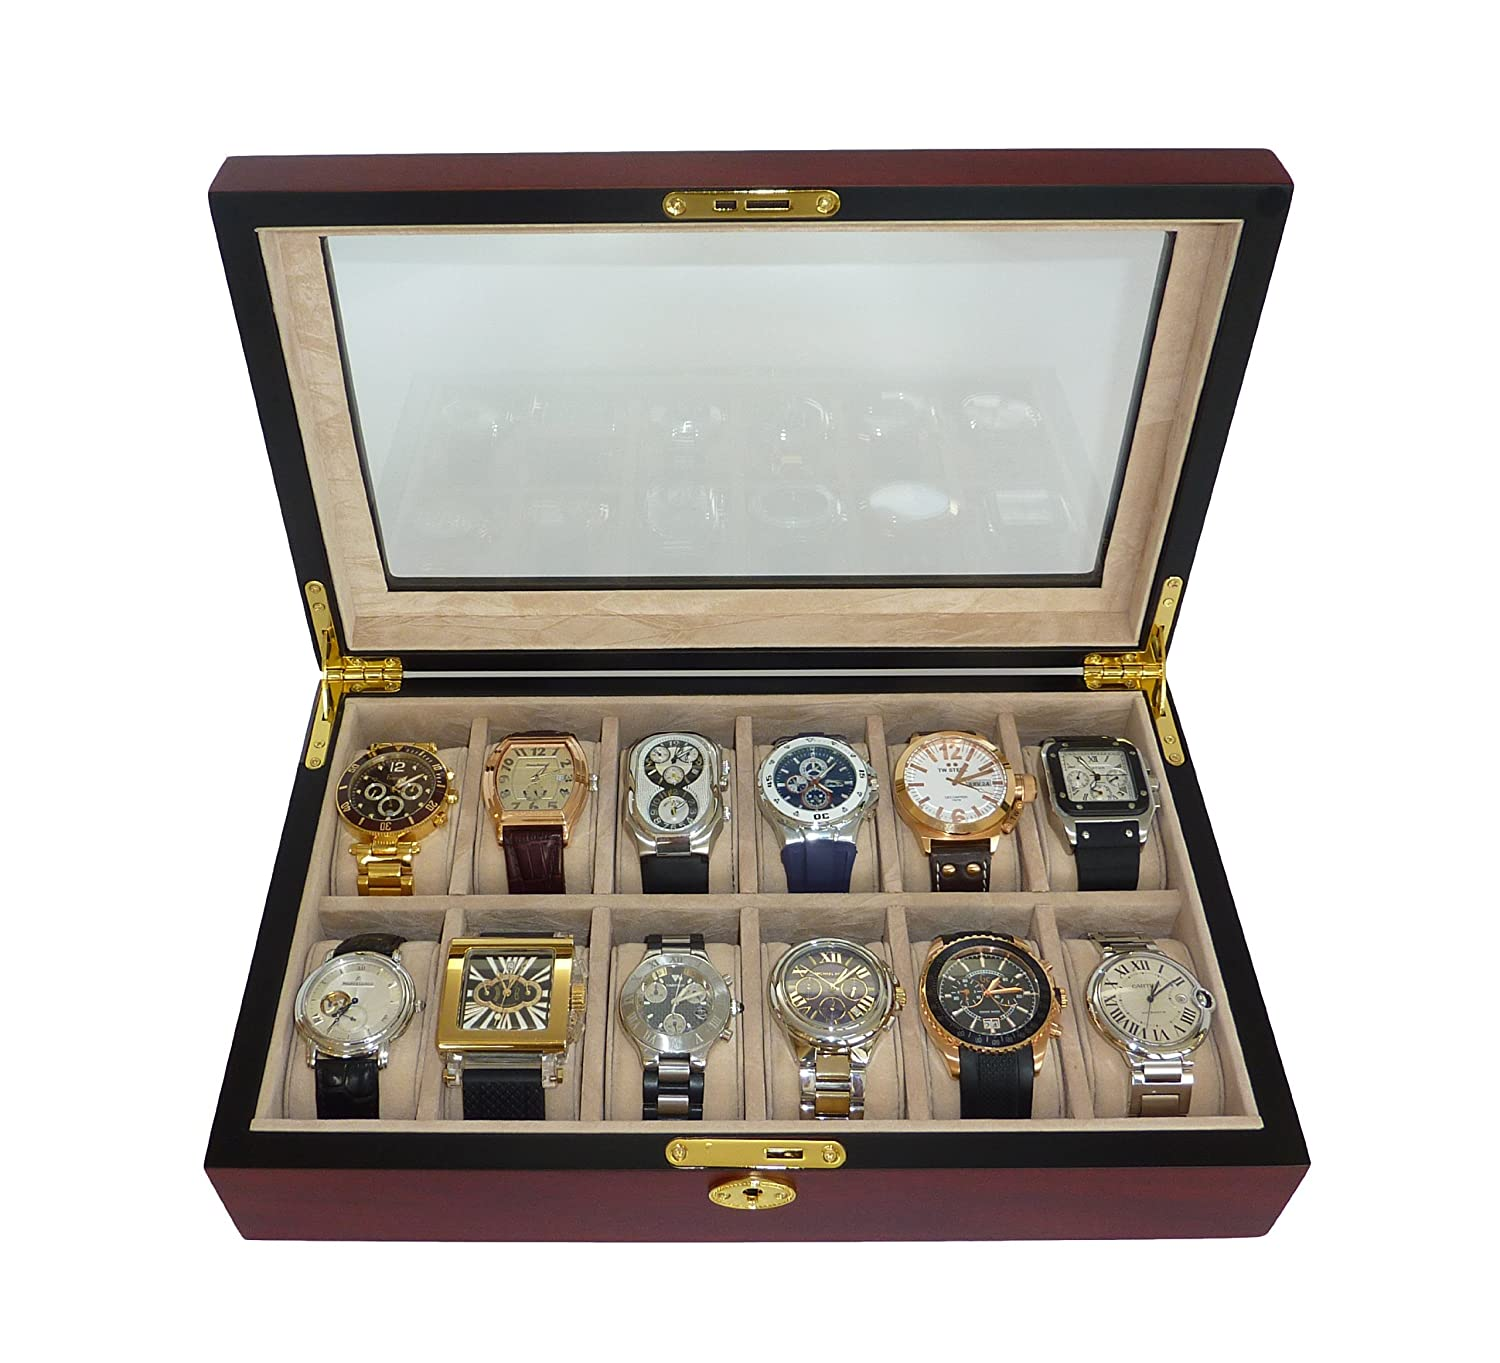 amazon com elegant 12 piece cherry wood rosewood watch box amazon com elegant 12 piece cherry wood rosewood watch box display case collection jewelry box storage glass top watches